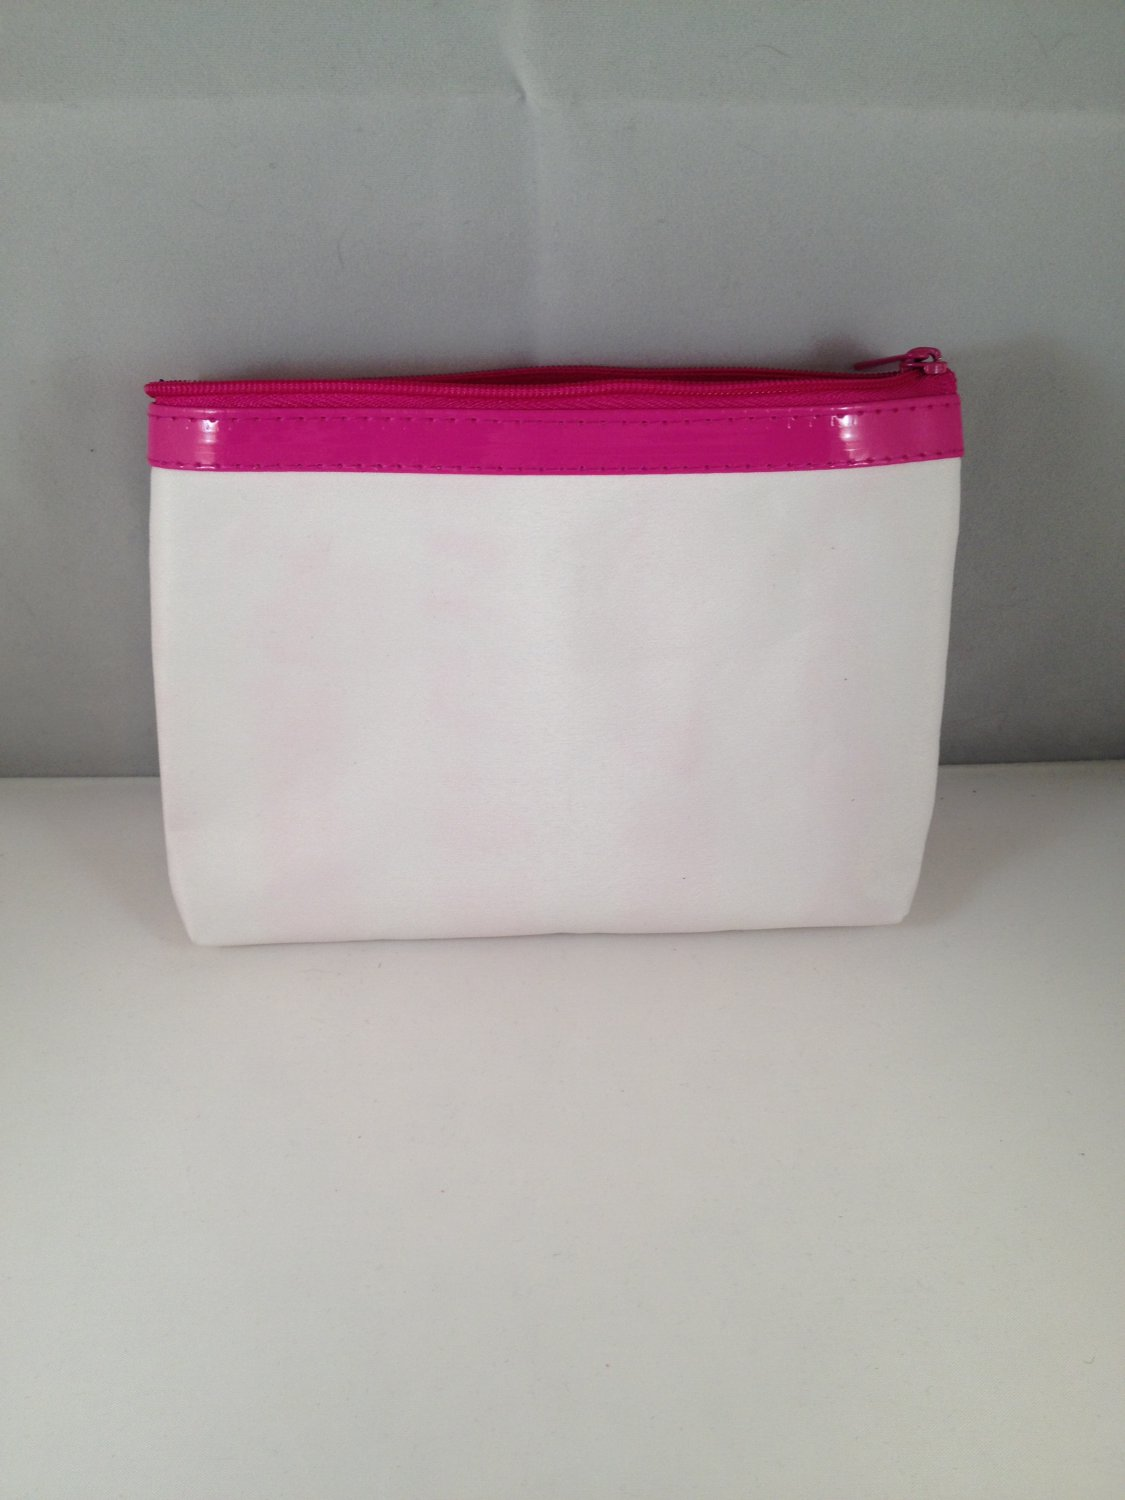 Ipsy MyGlam Glam Bag Pretty in Pink April 2013 White Cosmetic case clutch empty